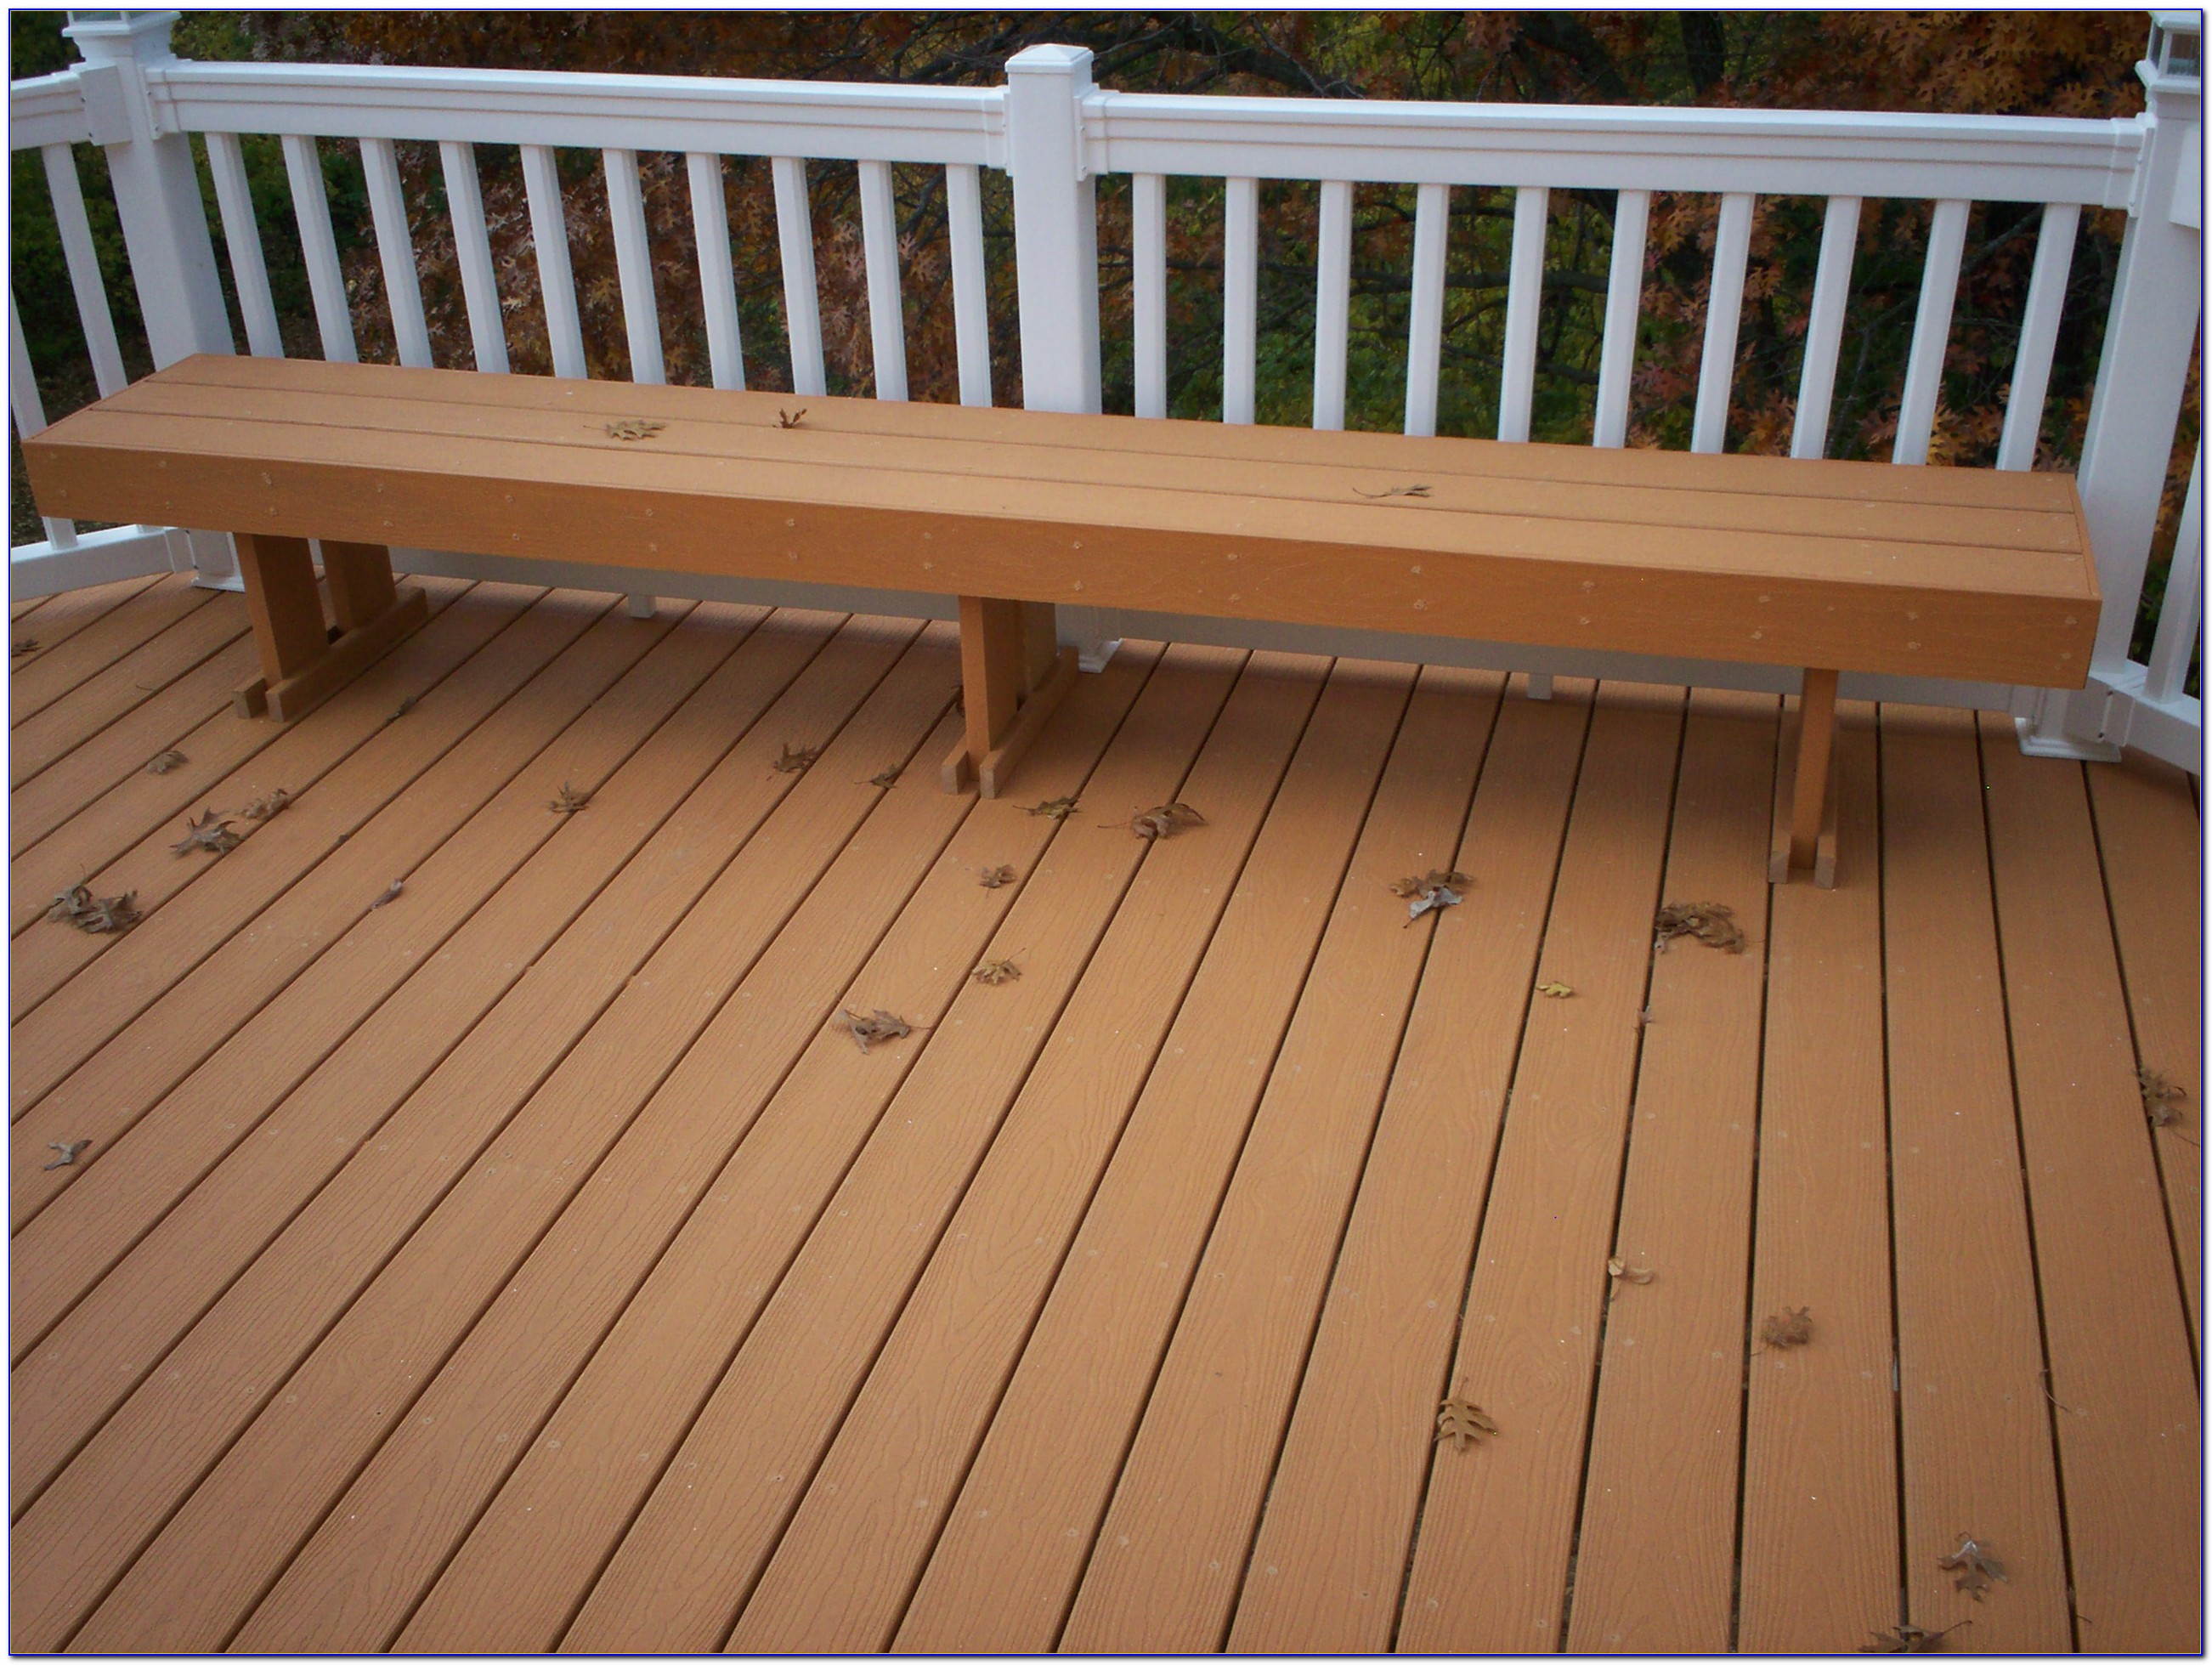 Wood Bench Designs For Decks